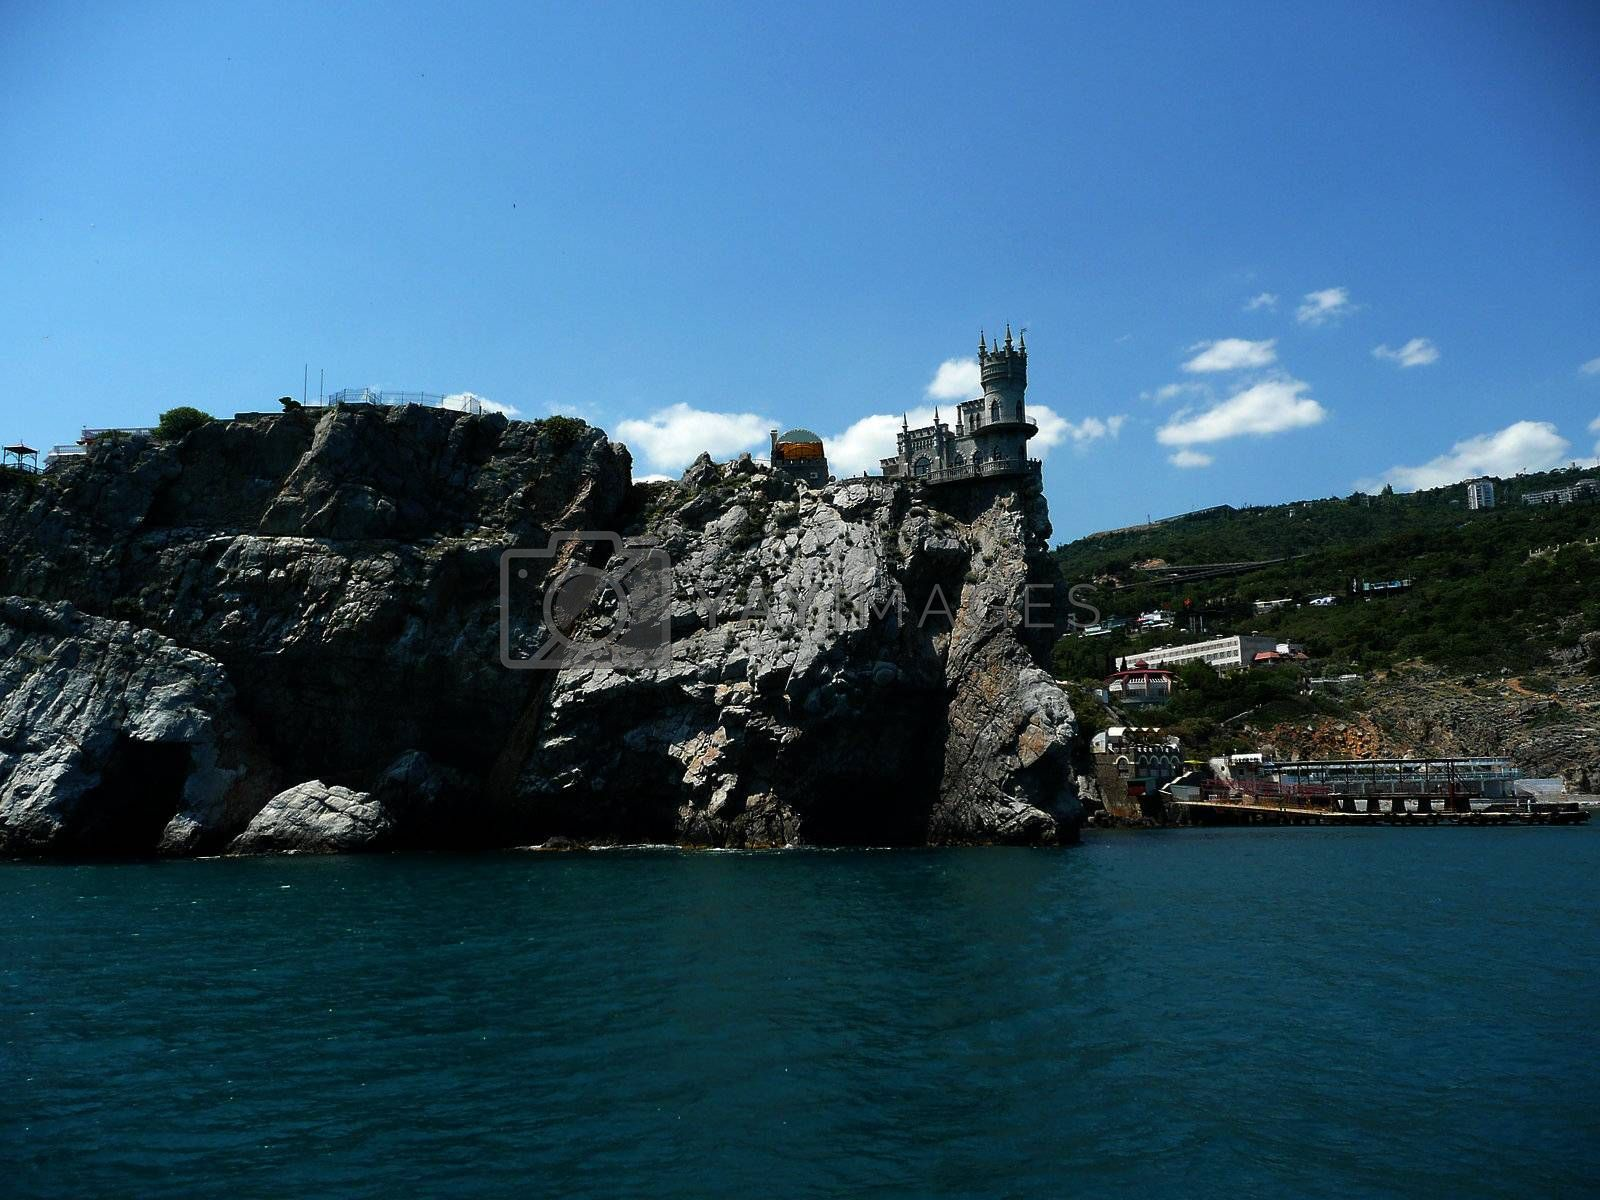 Swallow's Nest, Scenic Castle over the Black Sea, Yalta, Crimea, by Marco Rubino